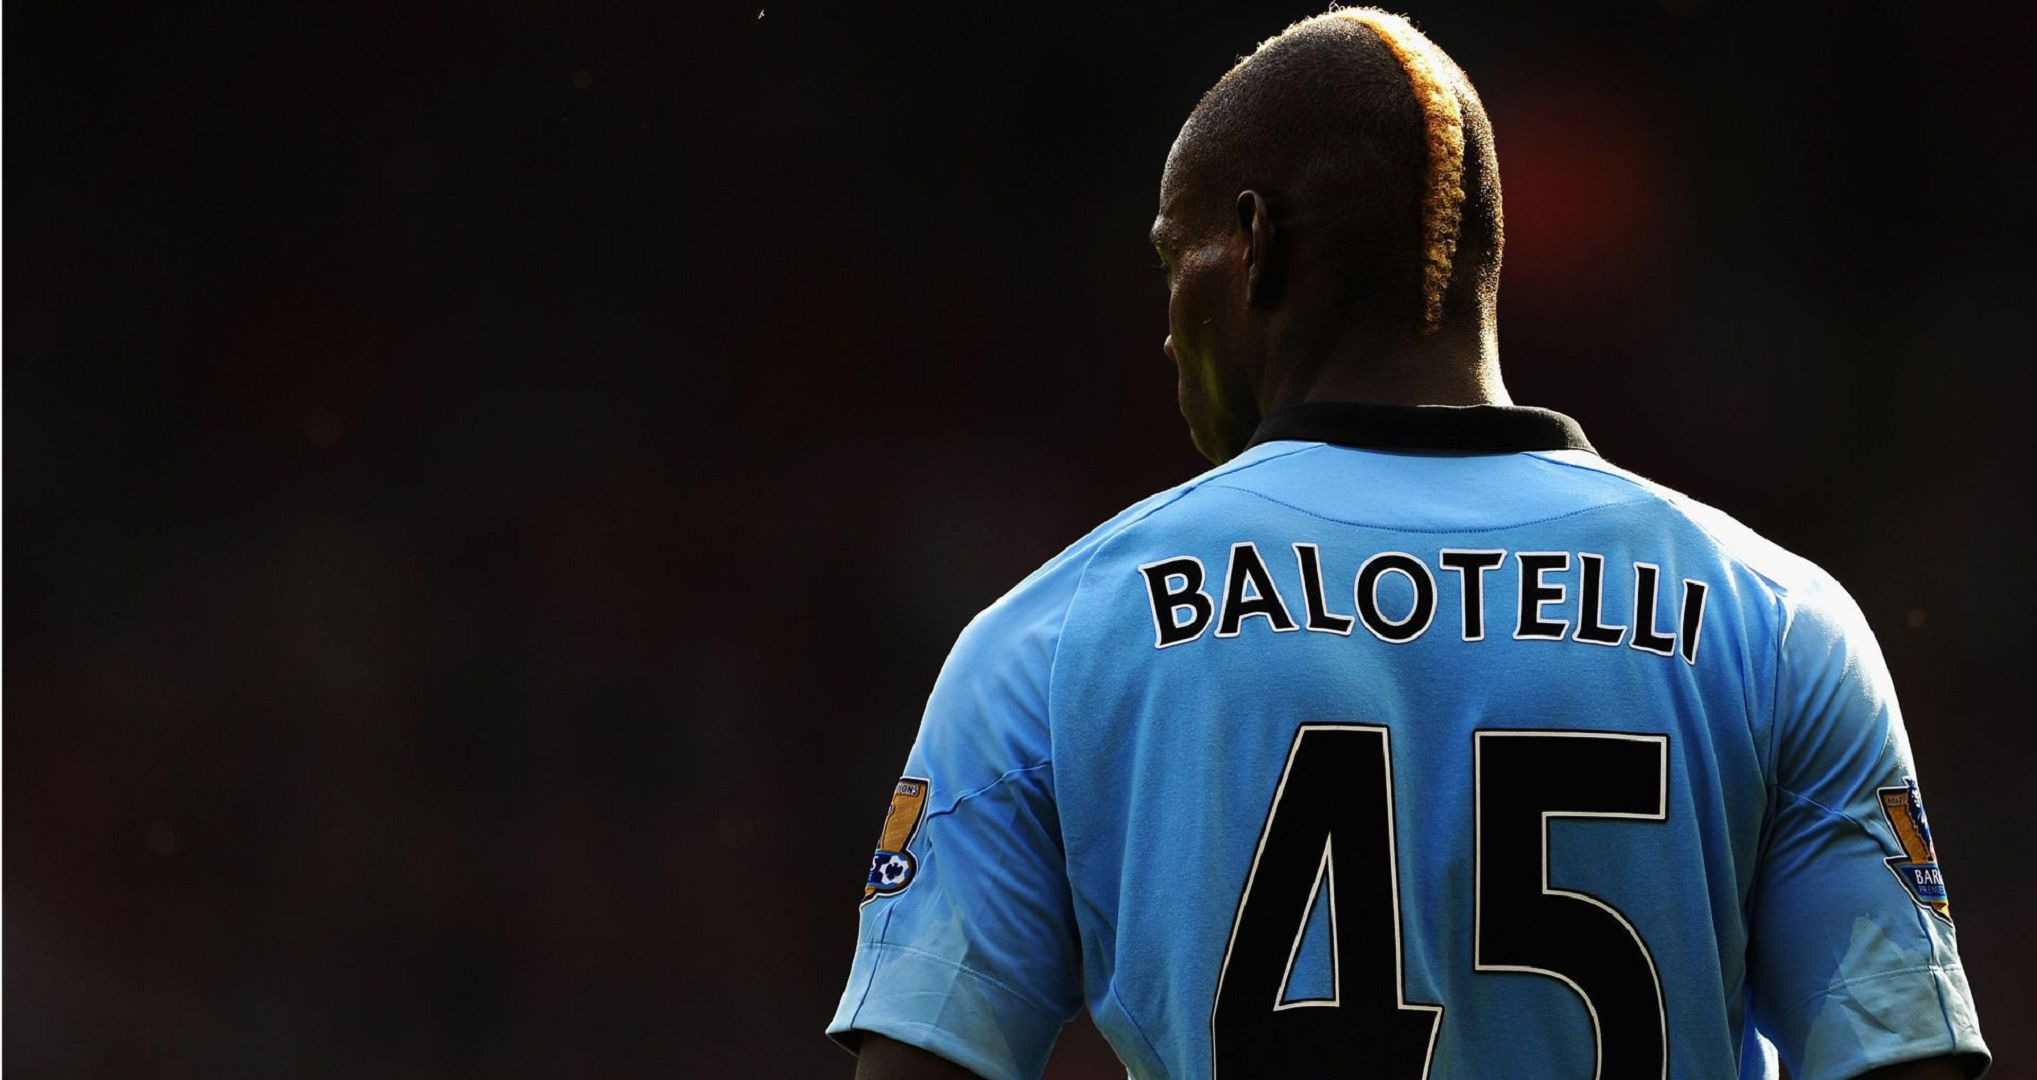 Balotelli Photos